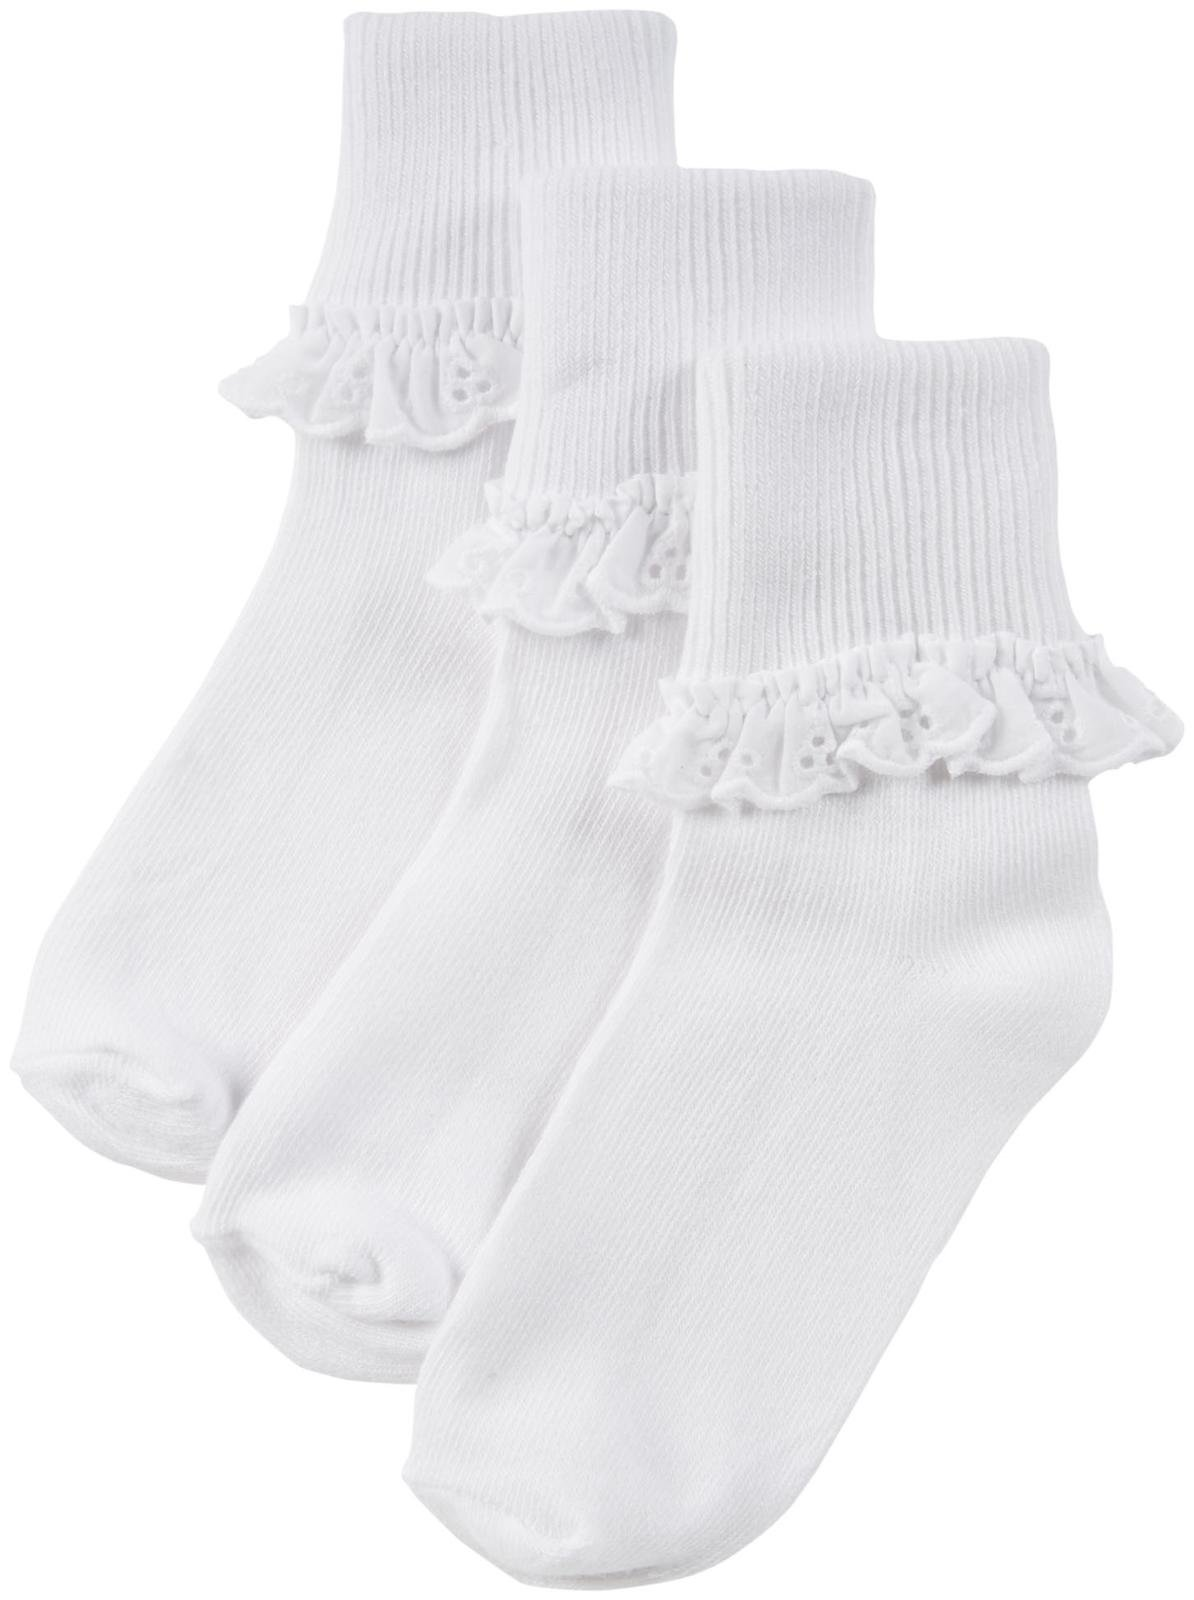 Kids' Eyelet Lace Sock